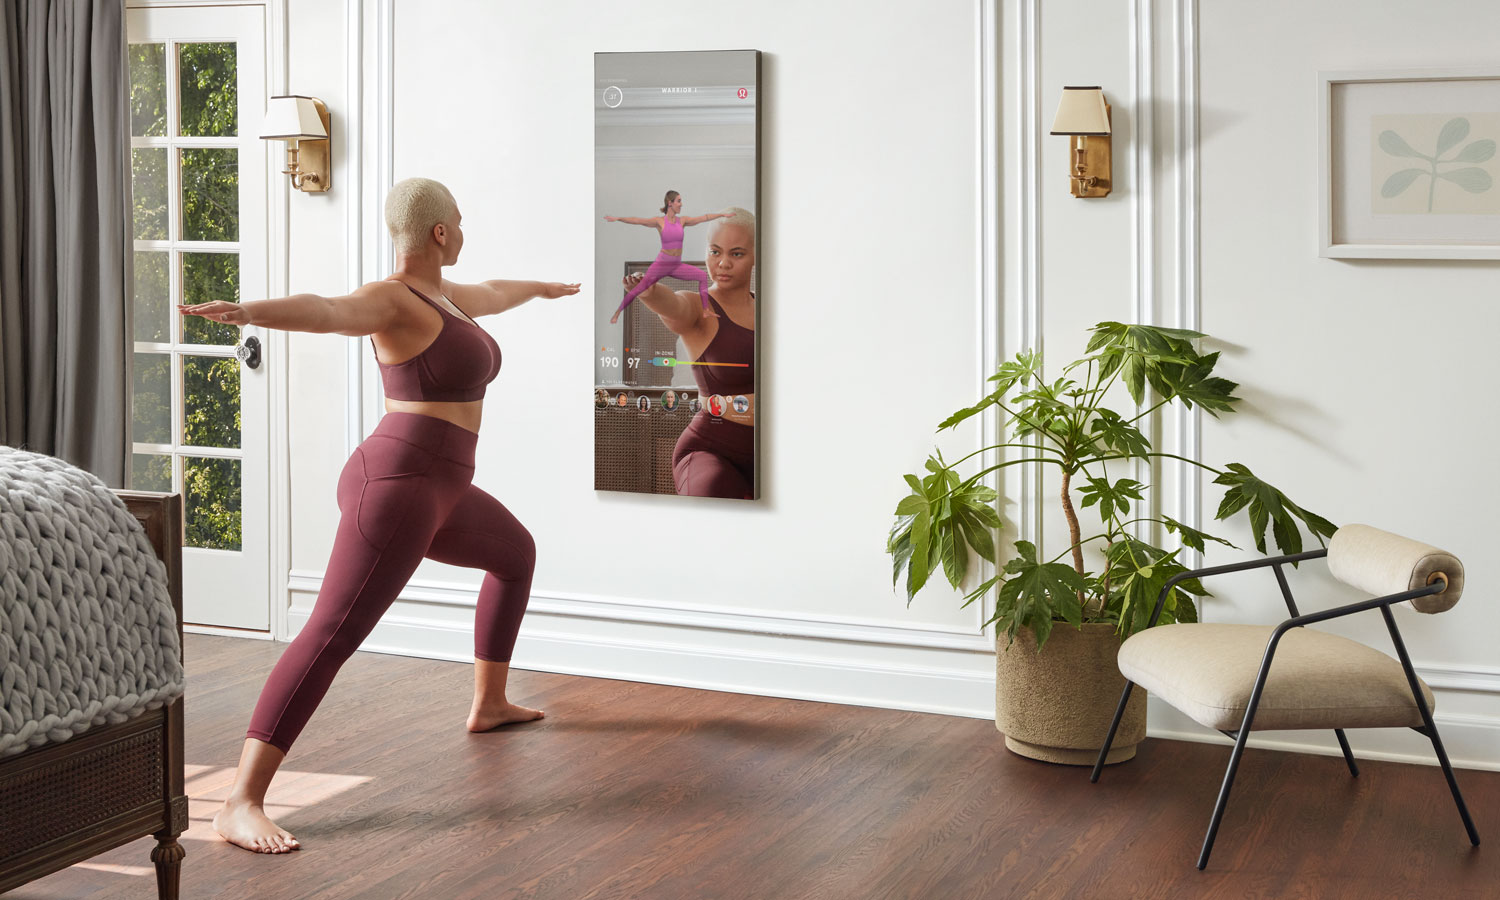 A woman doing yoga in warrior pose, in front of the Lululemon mirror, which gives her workout instructions.